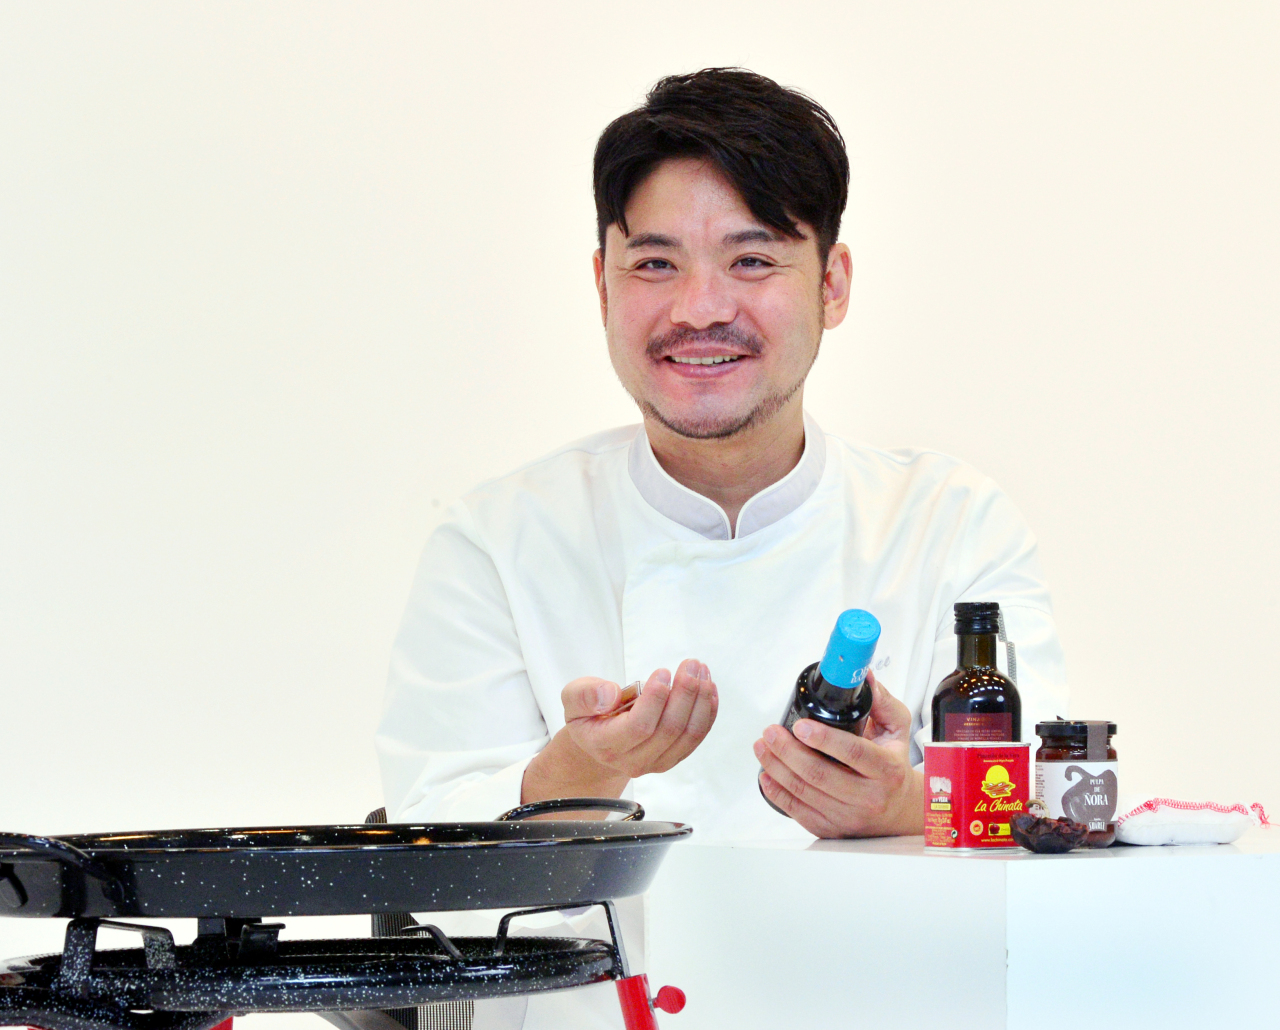 Lee Sang-hoon shows basic paella ingredients during an interview at The Korea Herald's studio in Seoul on Monday. (Park Hyun-koo / The Korea Herald)